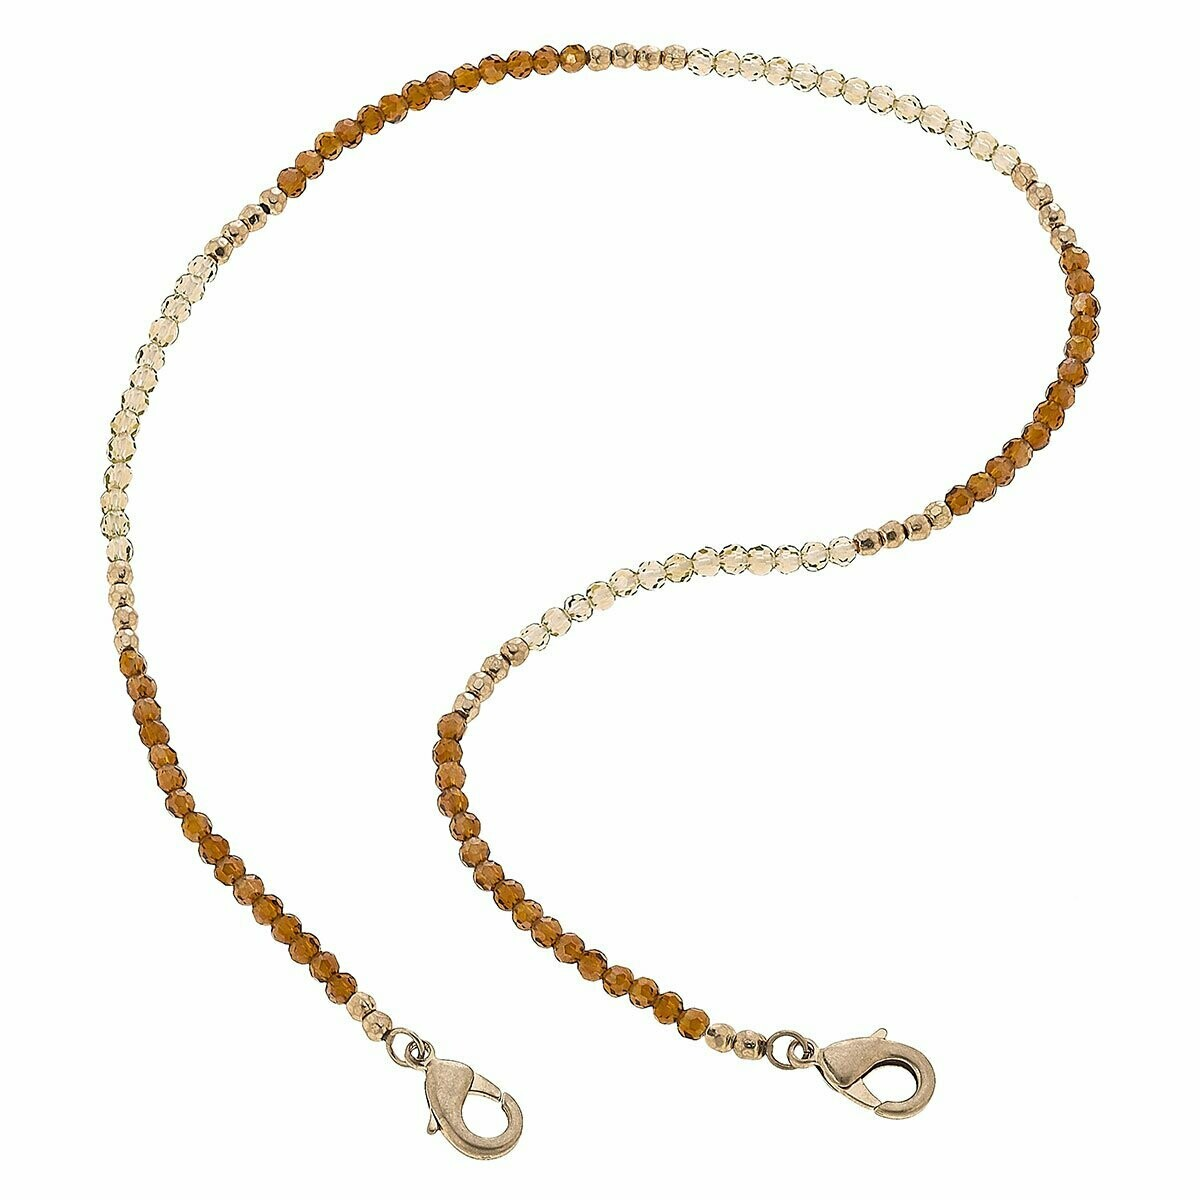 Chain Mask Necklace 22020M-CH-20